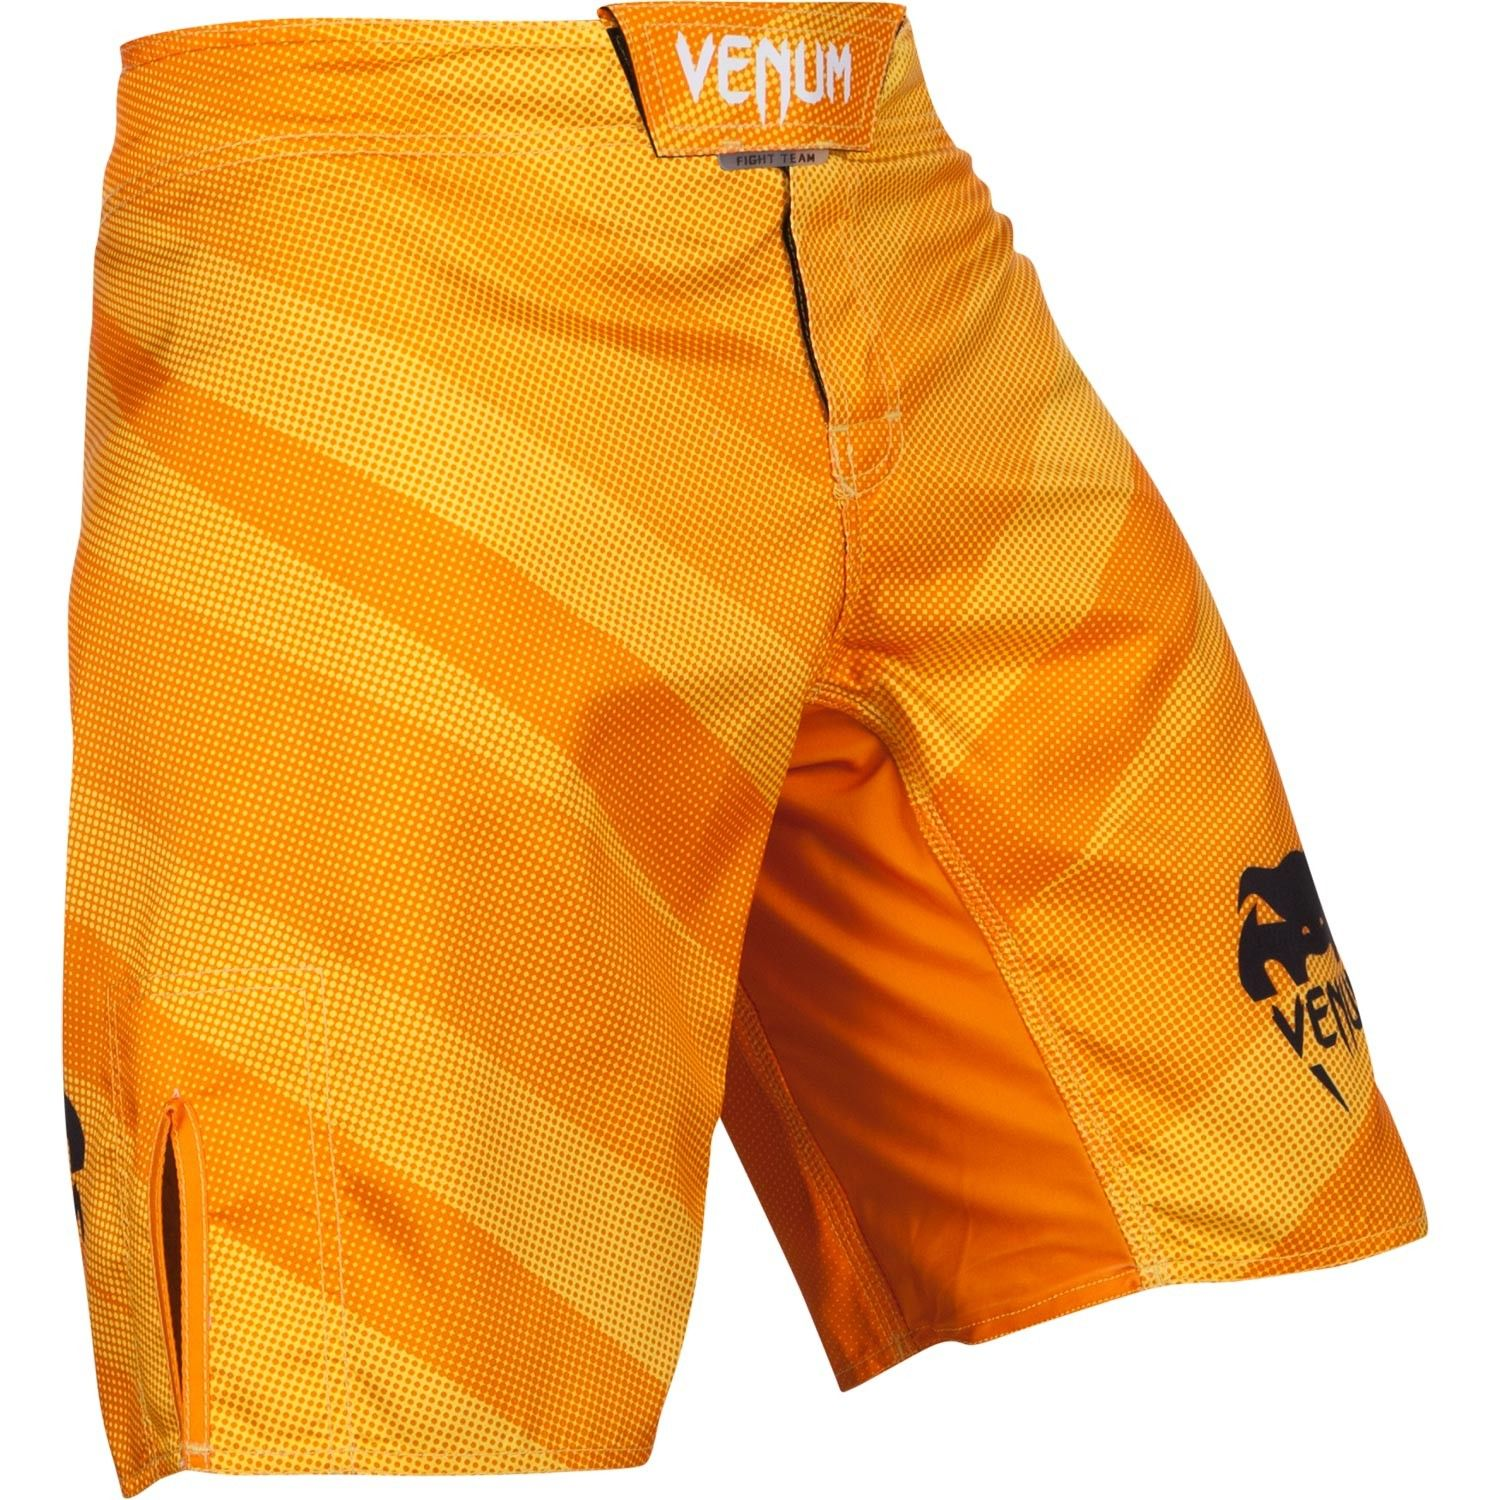 Venum Radiance Fightshorts - Yellow